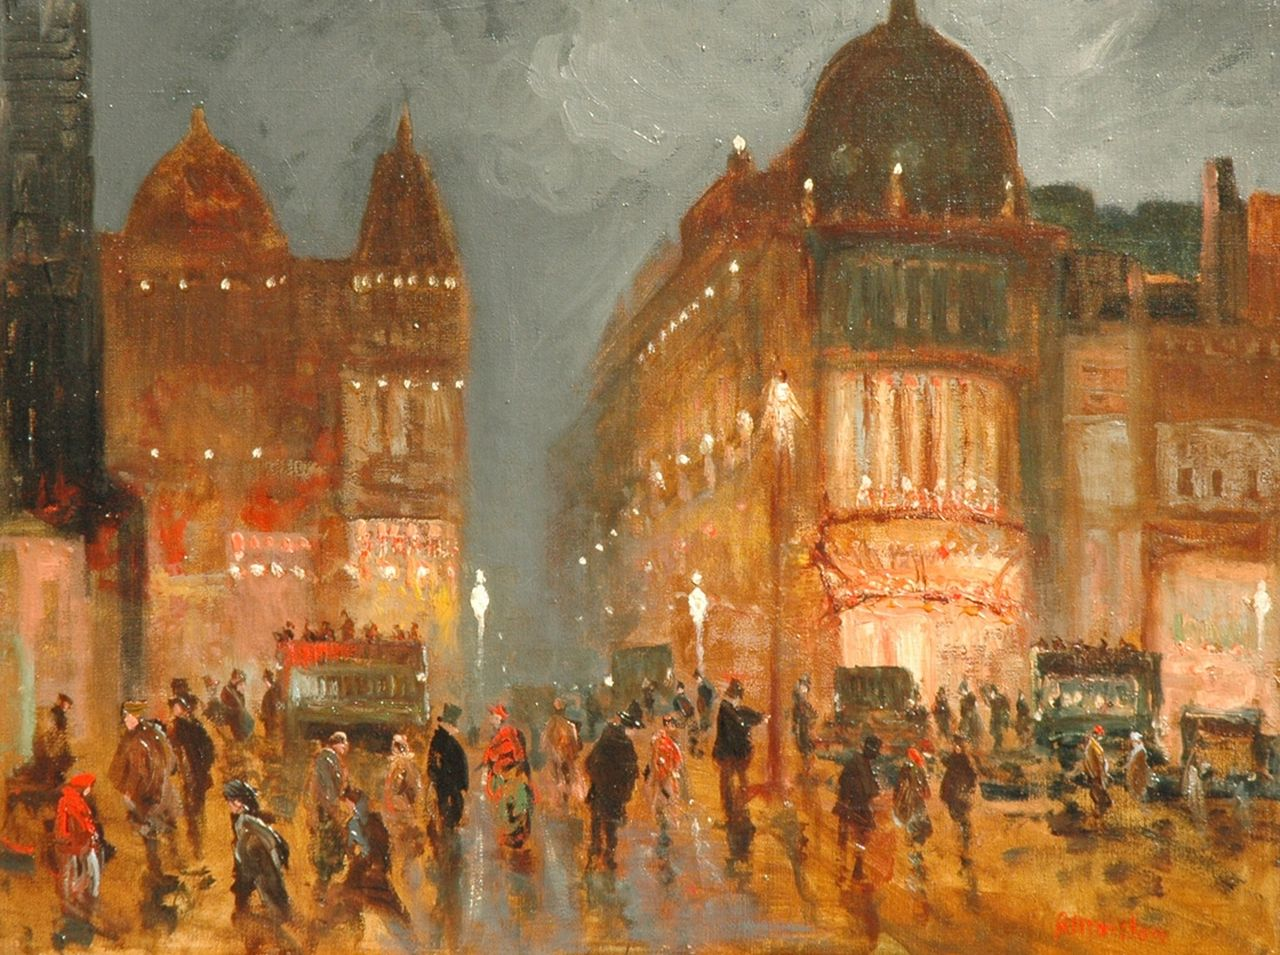 Marston | A busy London street scene at night, oil on canvas, 38.2 x 51.1 cm, signed l.r.